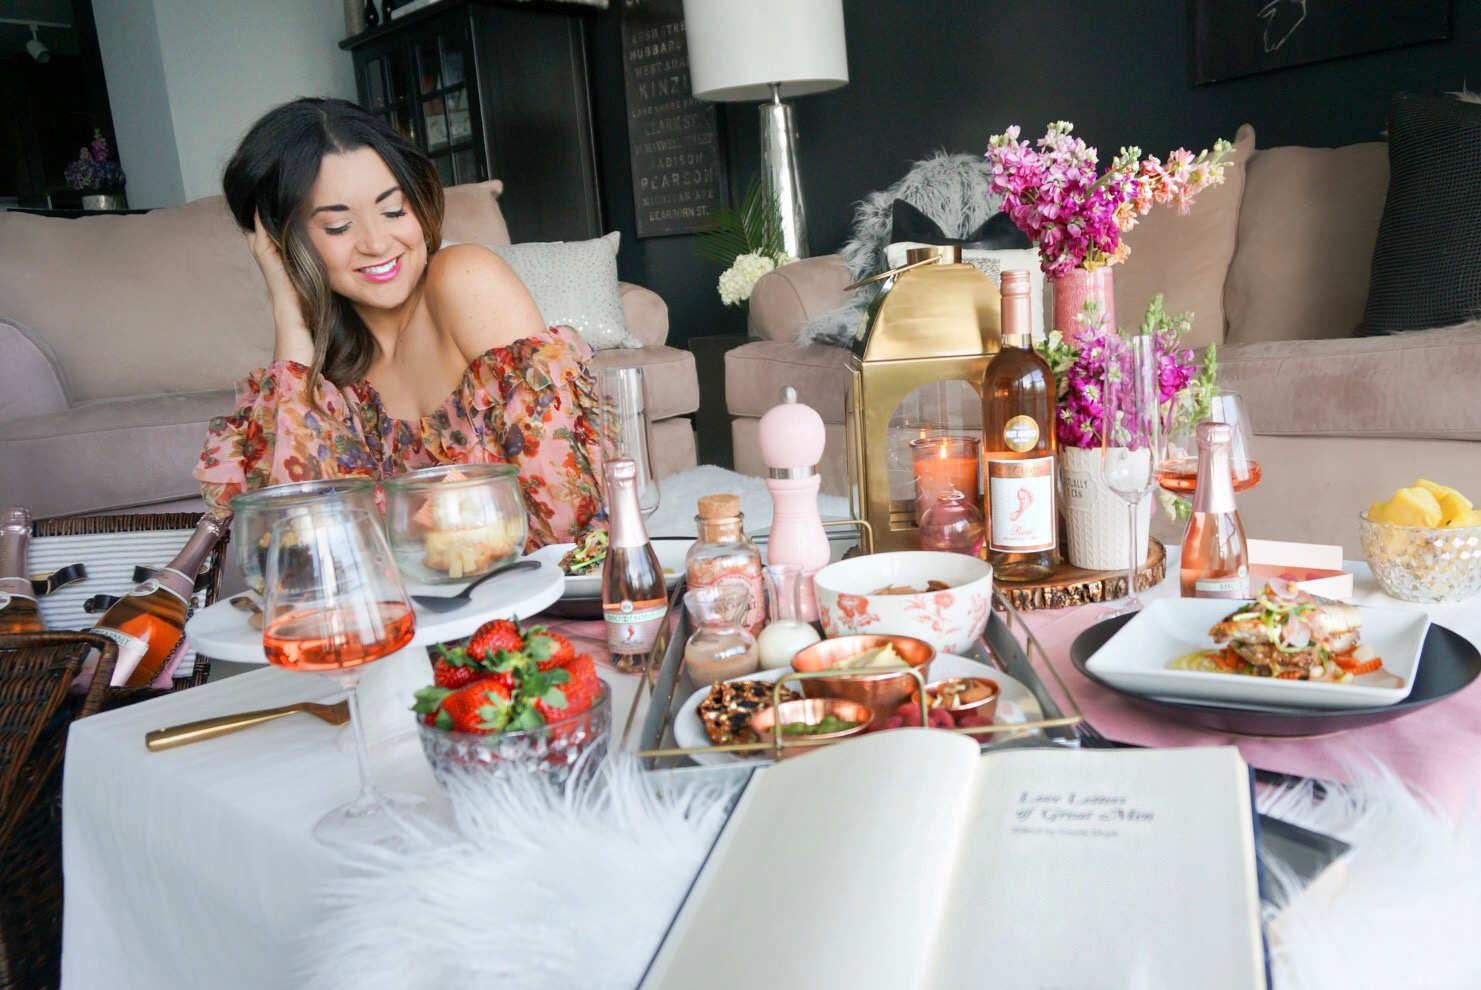 A Romantic Indoor Picnic Ideas and Living Room Setup for Valentine's Day